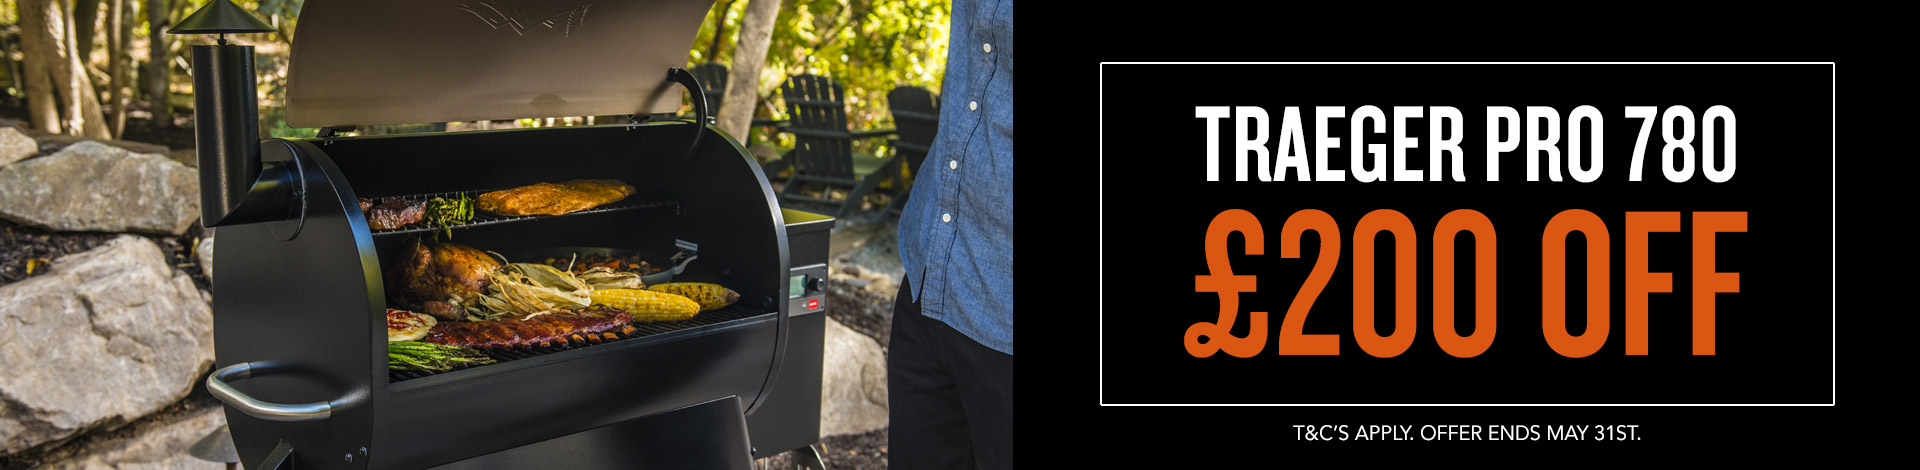 Traeger Pro 780 May offer